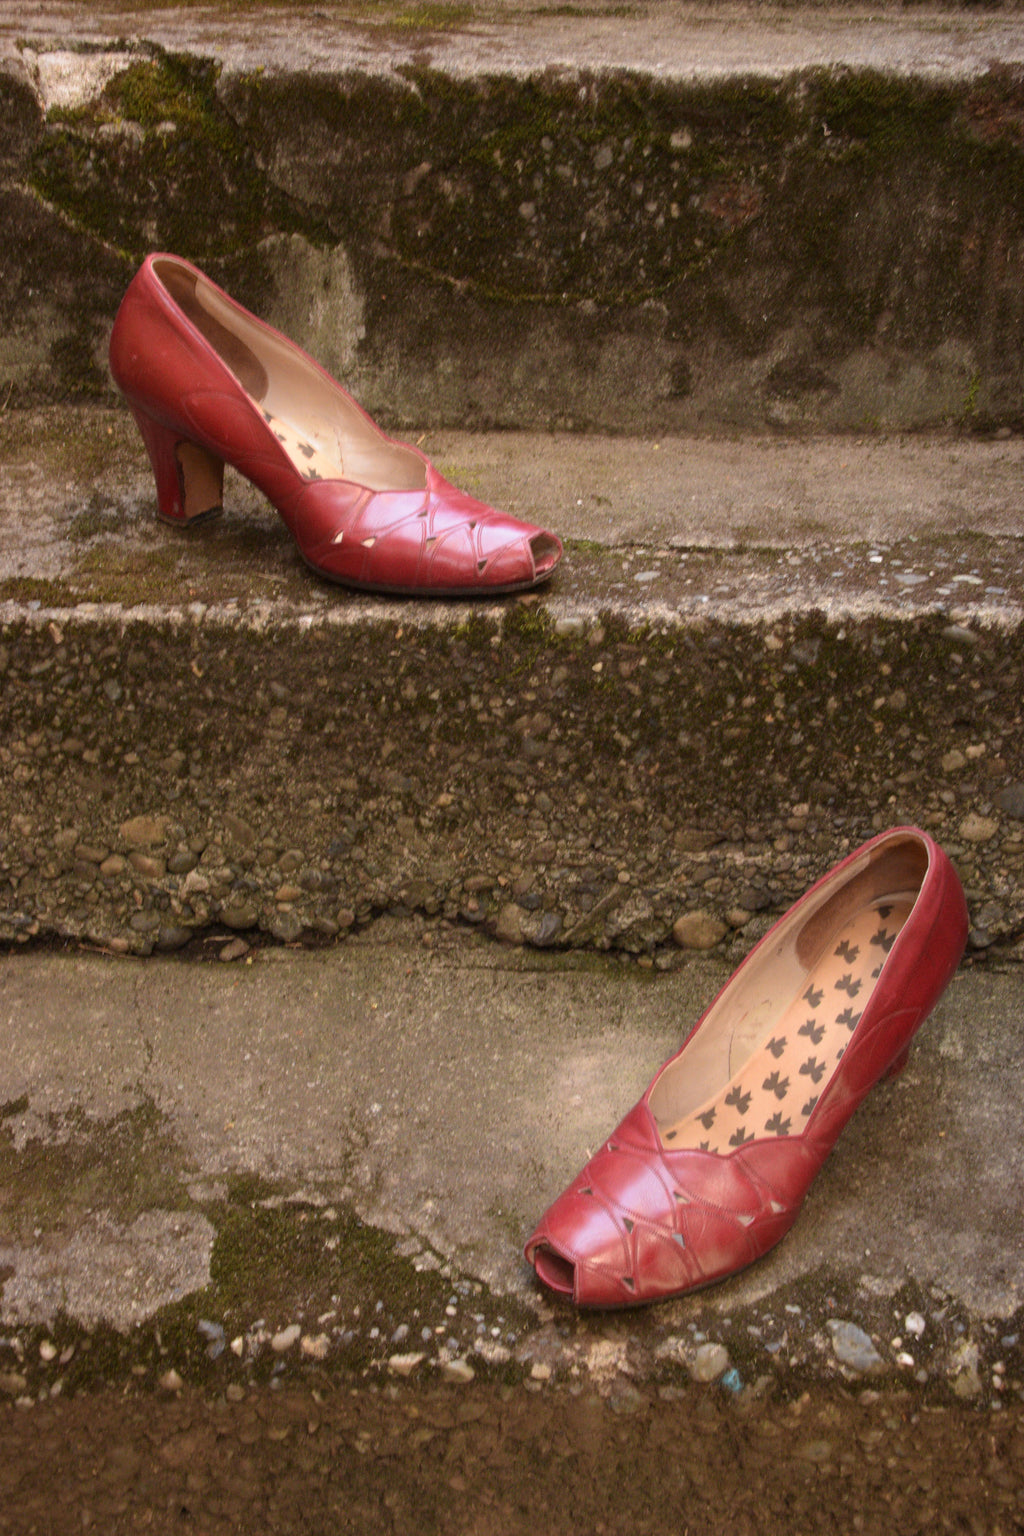 Lipstick Red 1940s Peep Toe Pumps with Top Stitching  Shoe Size 9.5 10 US